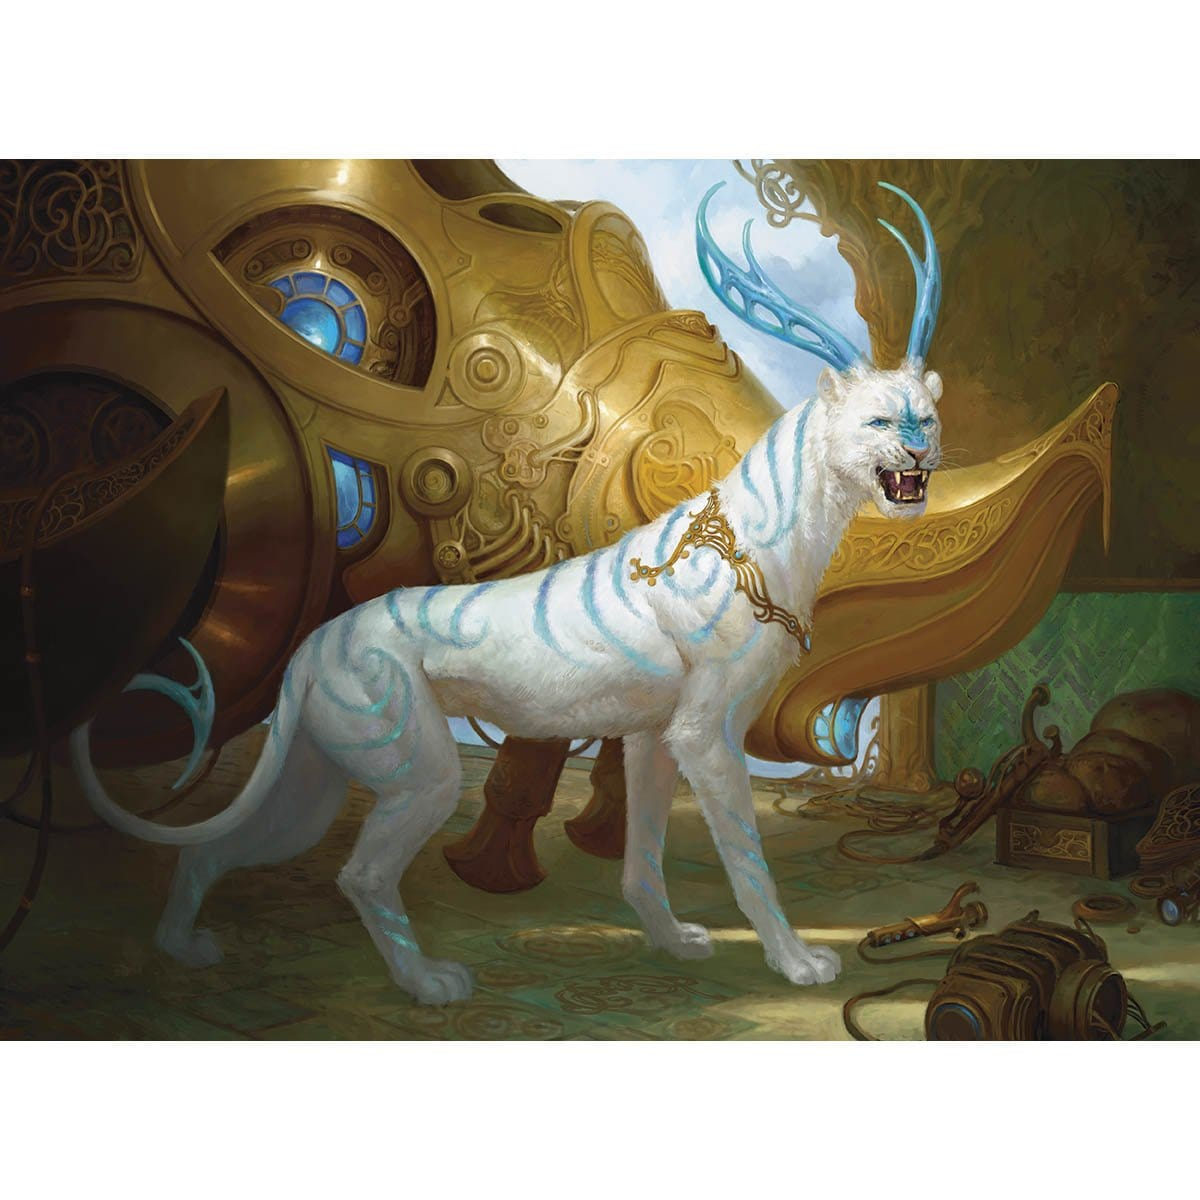 Felidar Guardian Print - Print - Original Magic Art - Accessories for Magic the Gathering and other card games